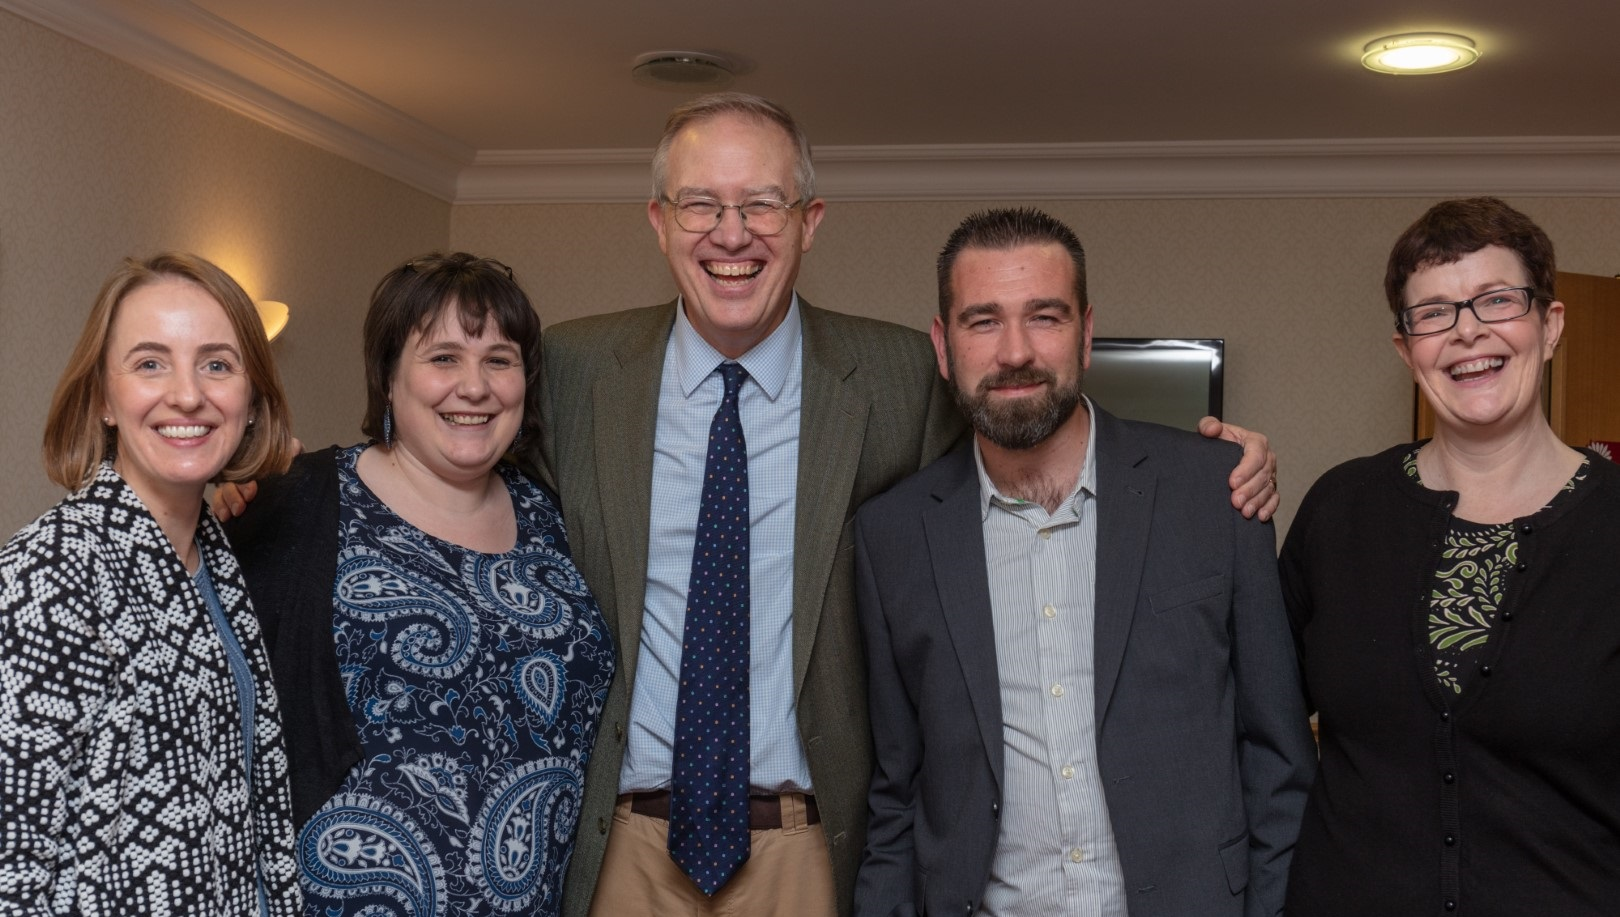 John Baron with the BBW CVS Event Management Team Pictured in 2019